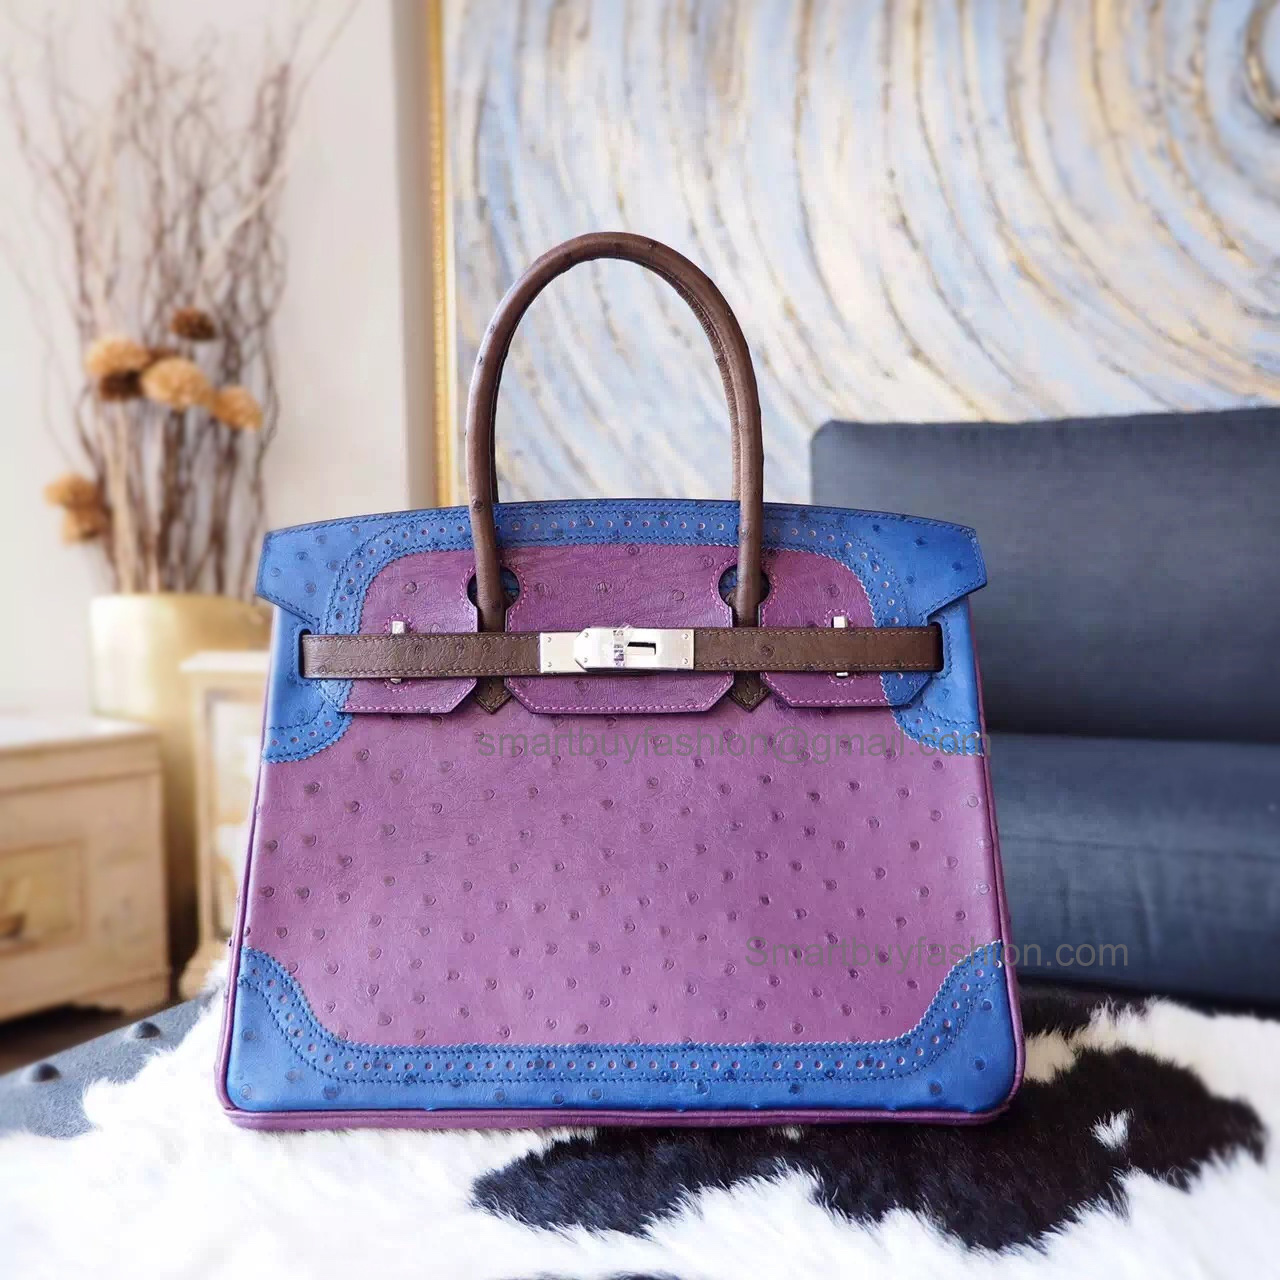 f5acb73353d4 Handstitched Hermes Birkin 30 Ghillies Bag in Multicolored 5c Violet  Ostrich SHW ...